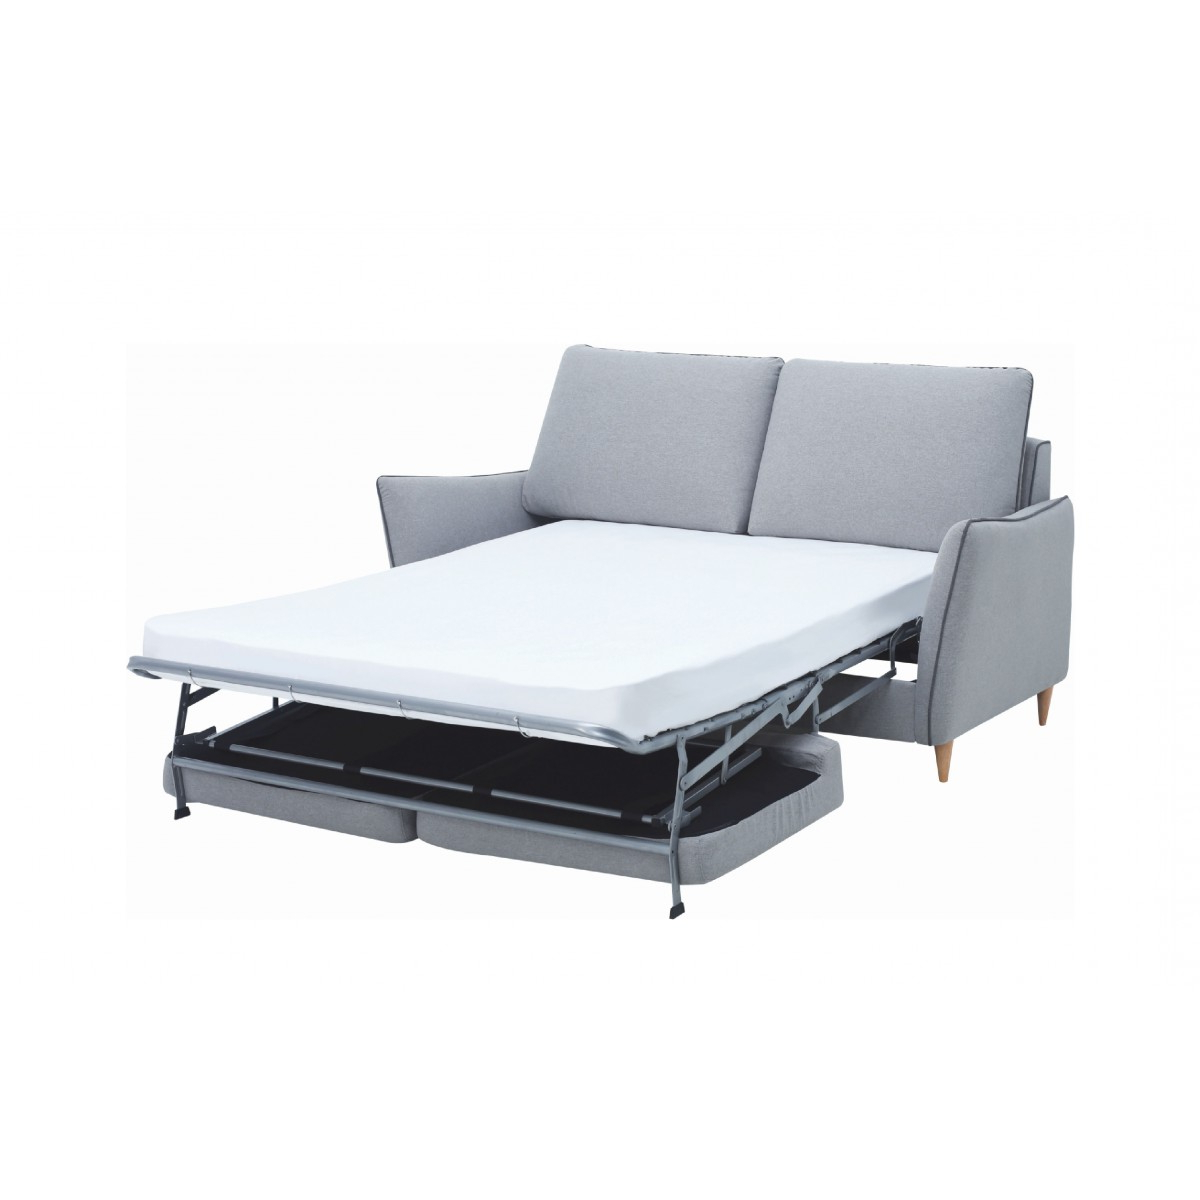 Sofa Bed Chairs Inside Favorite Agera Sofa Bed With Pale Silver Colour Dimity Fabric – Sofa Bed (View 14 of 20)